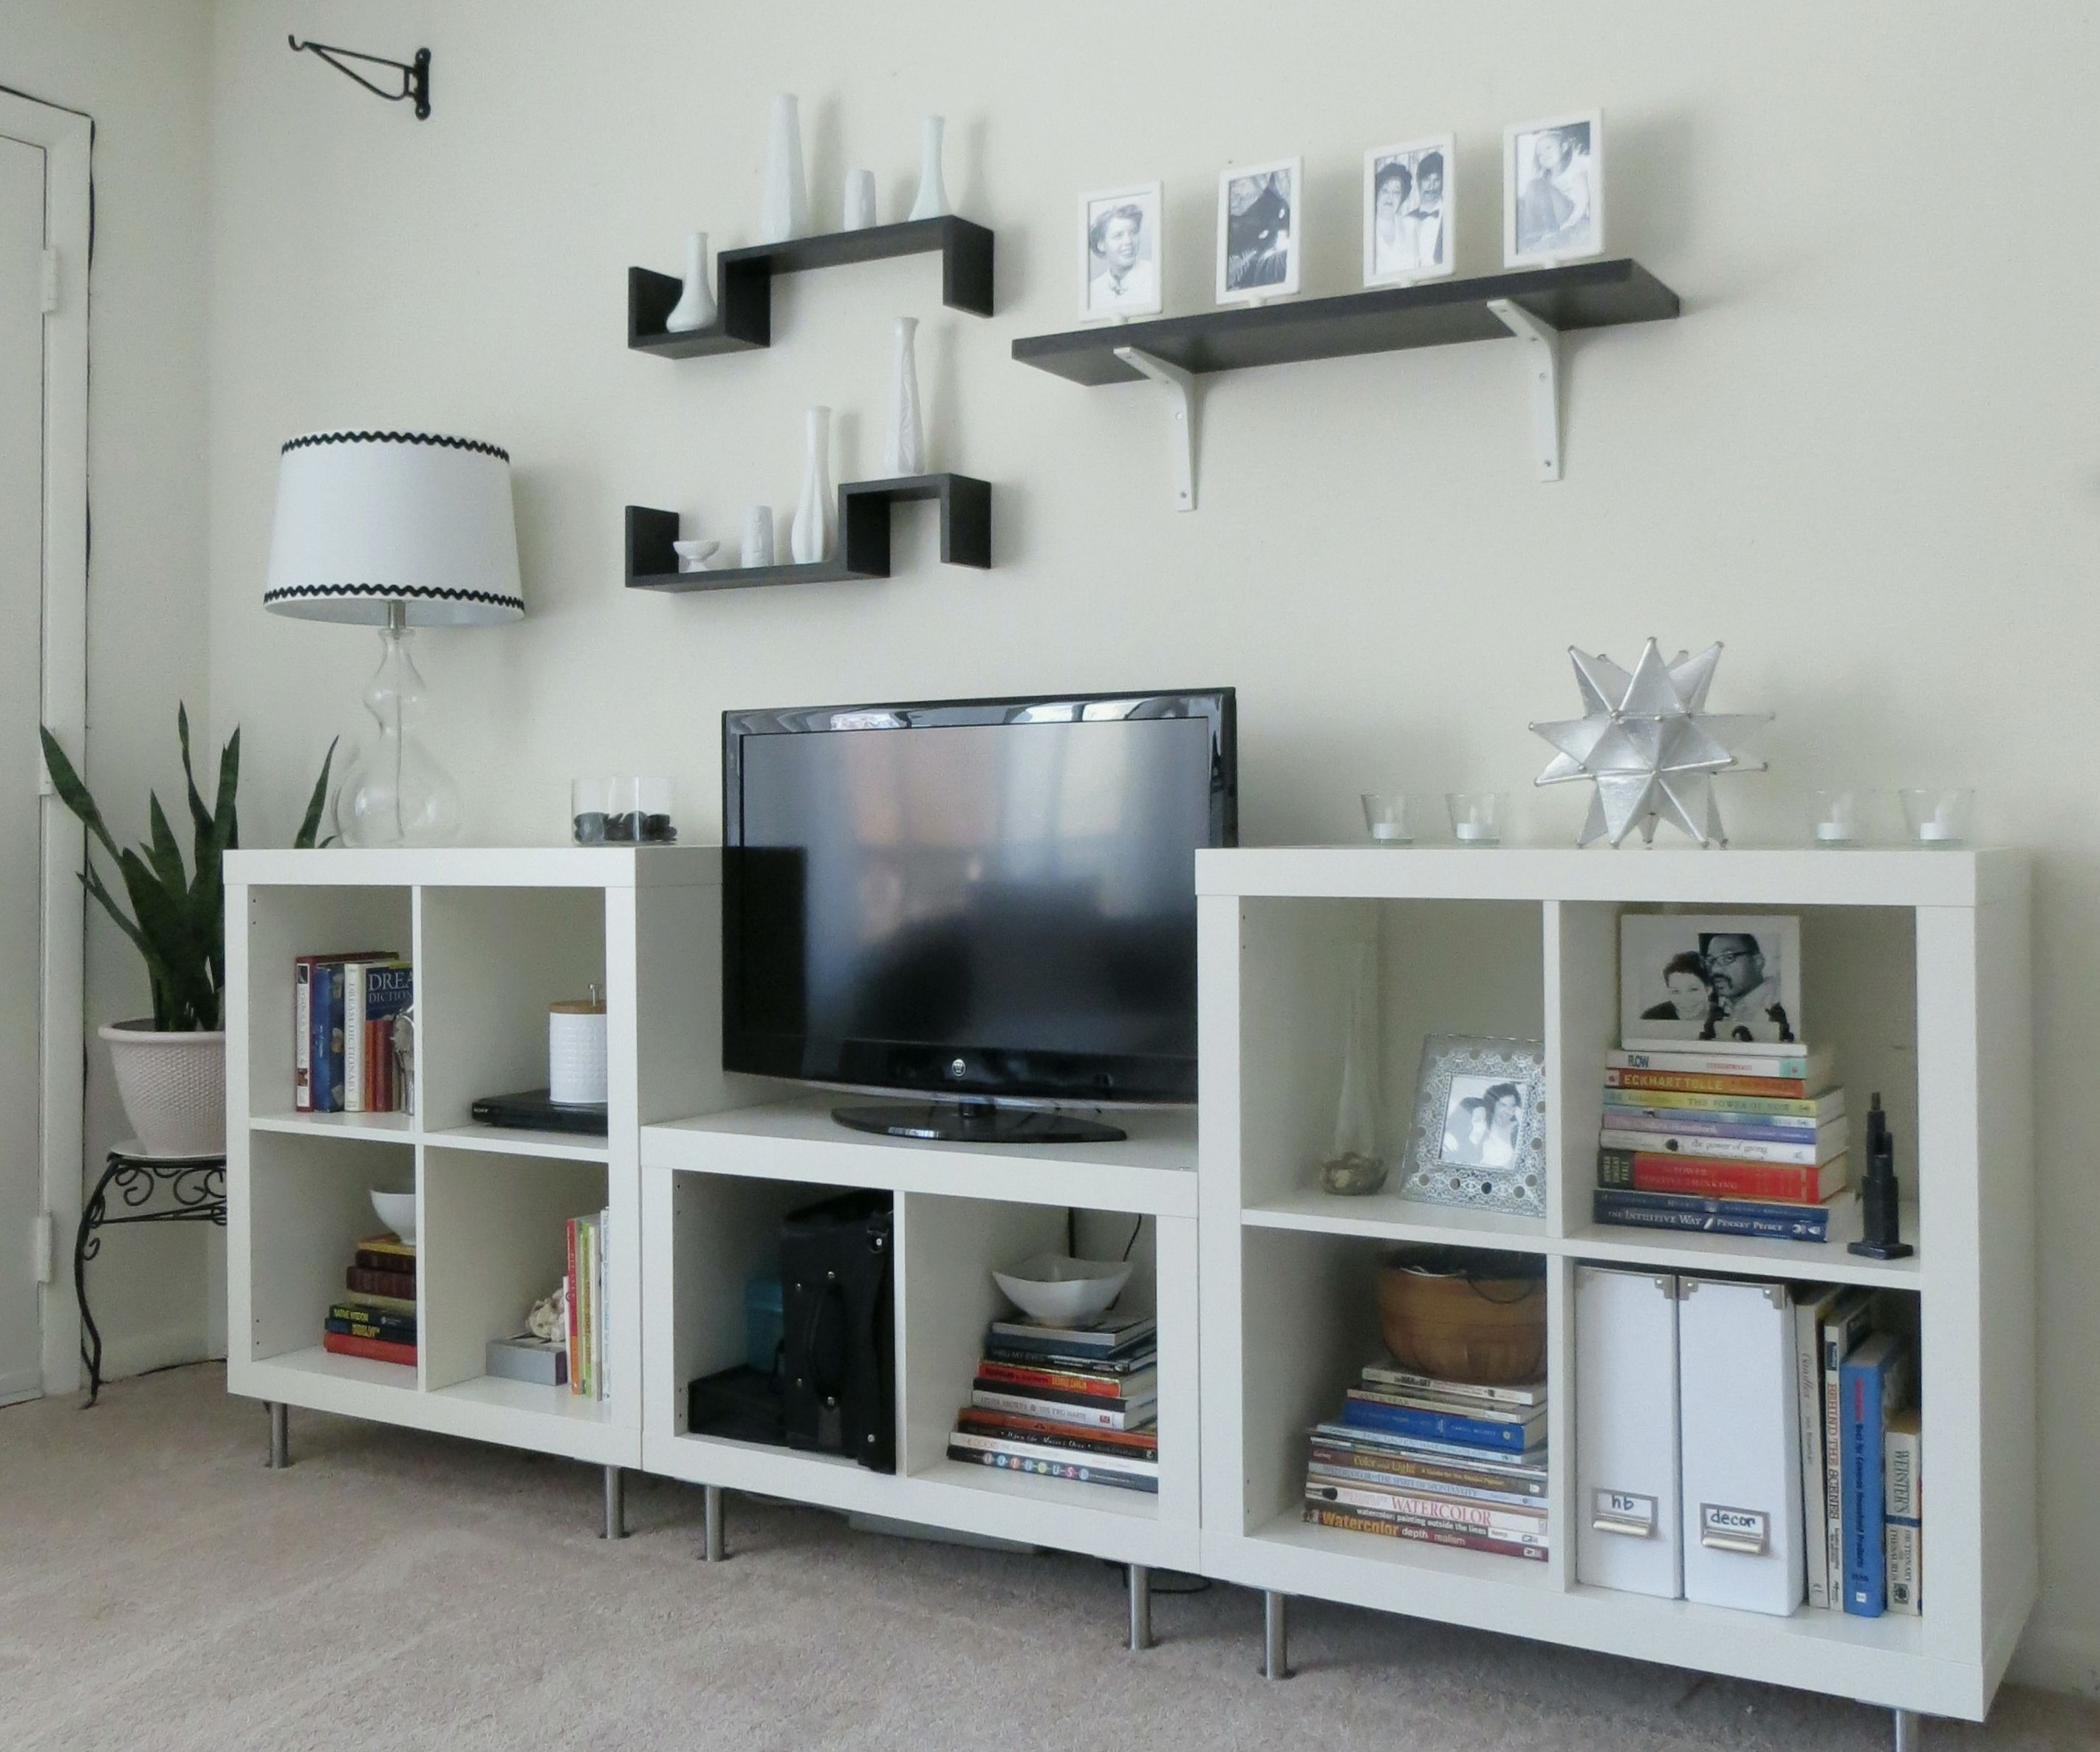 Tv Stands 10 Great Design Entertainment Centers With Bookshelves Inside Tv And Bookshelf (#11 of 15)